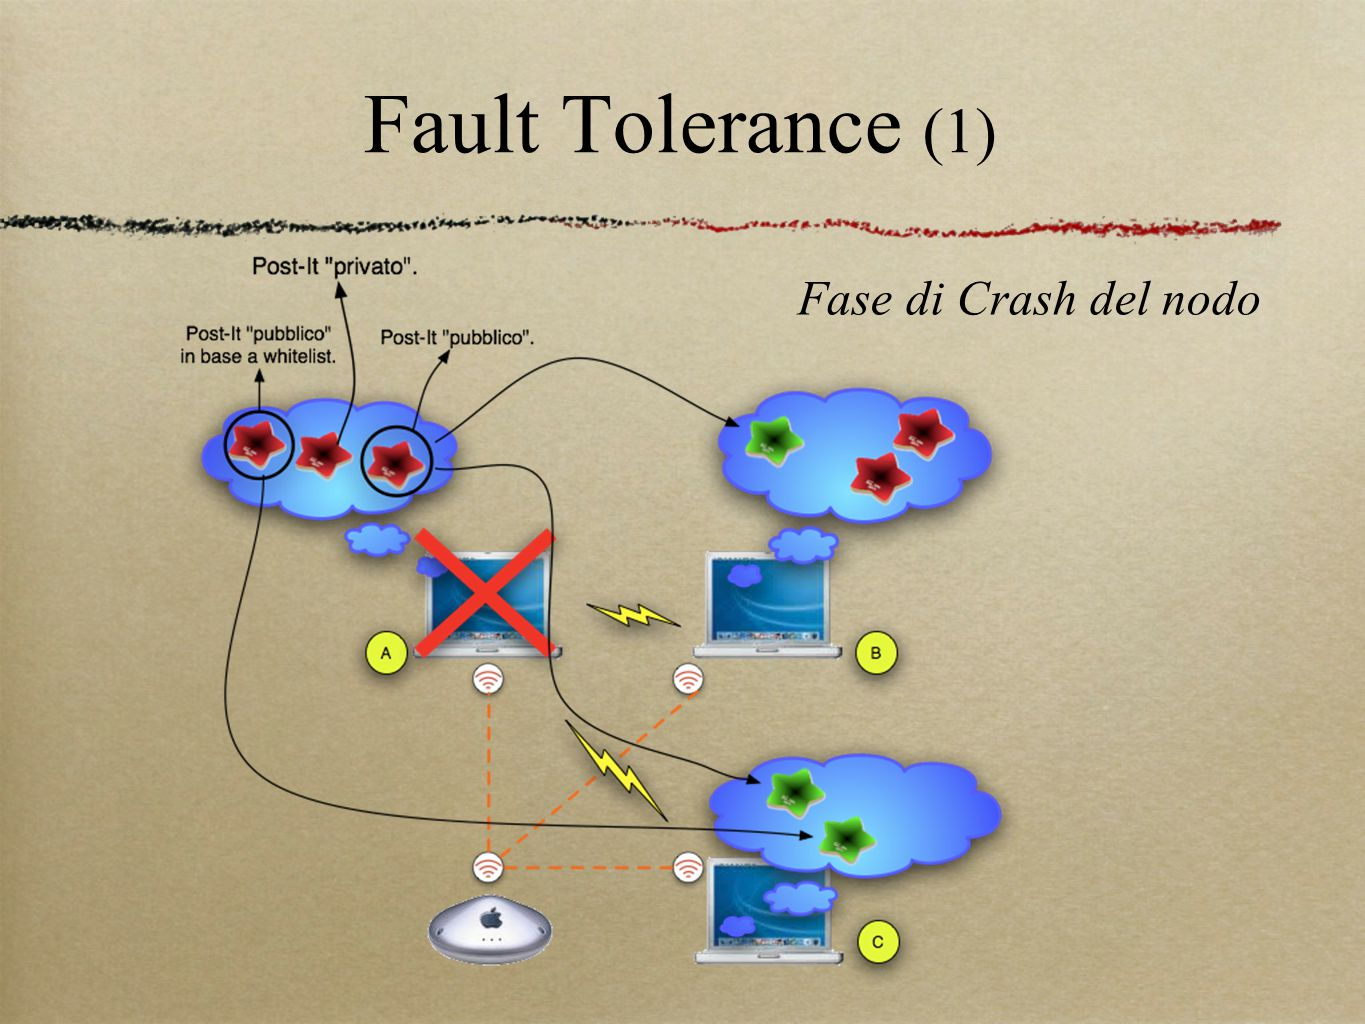 Fault Tolerance (1) Fase di Crash del nodo